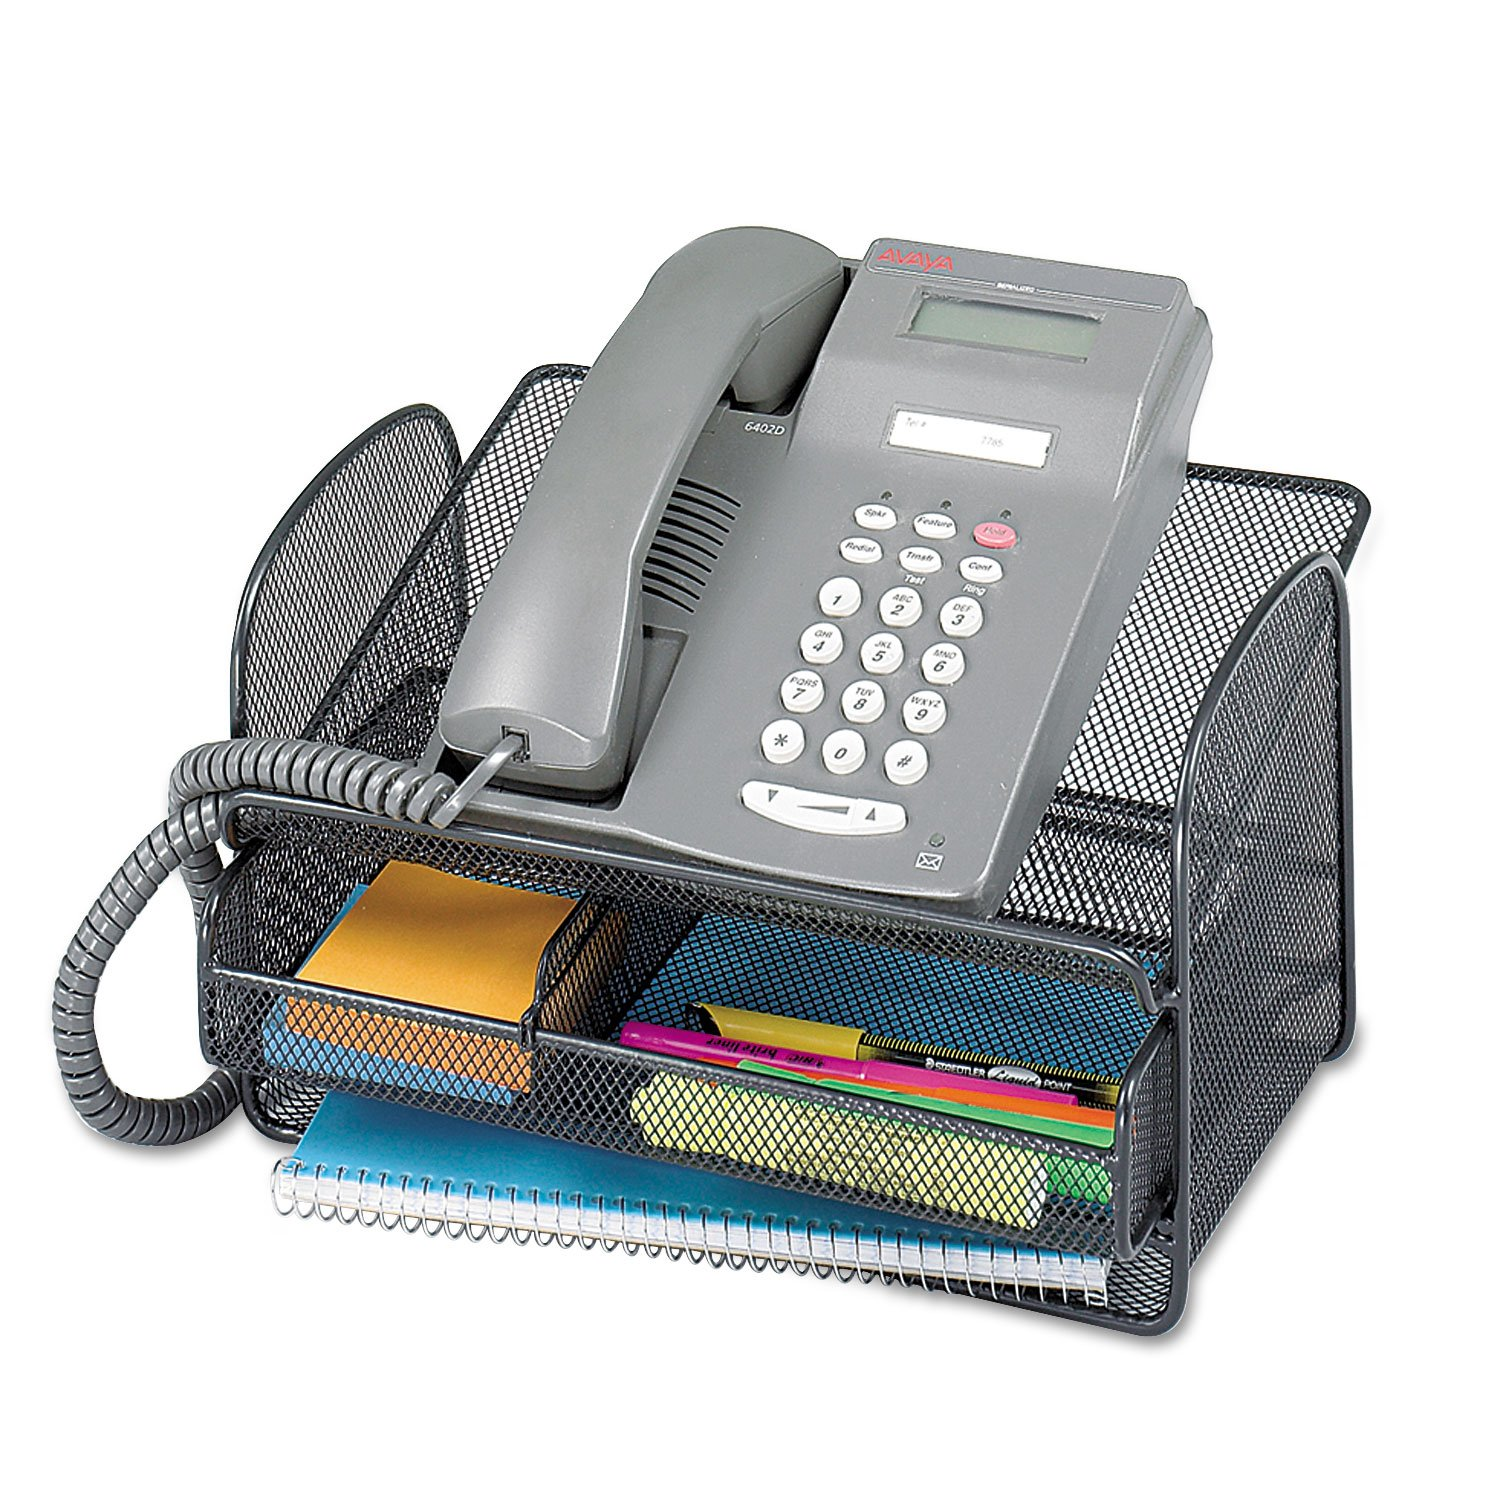 Safco 2160BL Onyx Angled Mesh Steel Telephone Stand 11 3/4 x 9 1/4 x 7 Black by 5COU